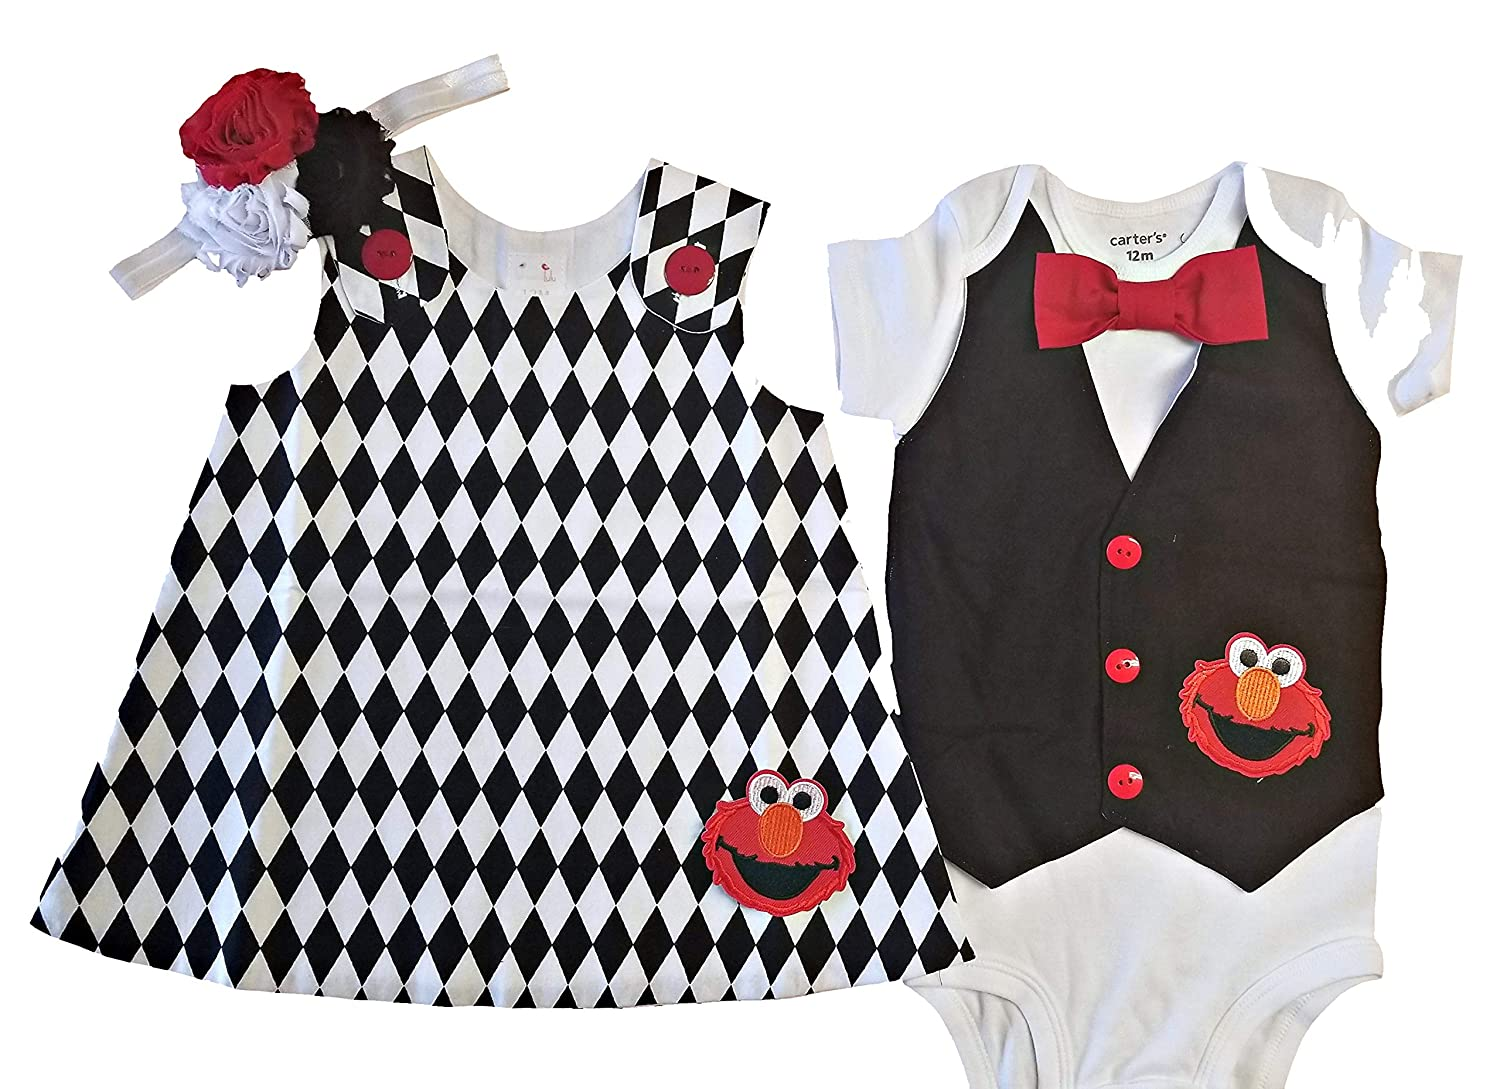 4d3746ffb60 Perfect pairz boy girl twin outfits elmo set usa made clothing jpg  1500x1089 Outfits for twin